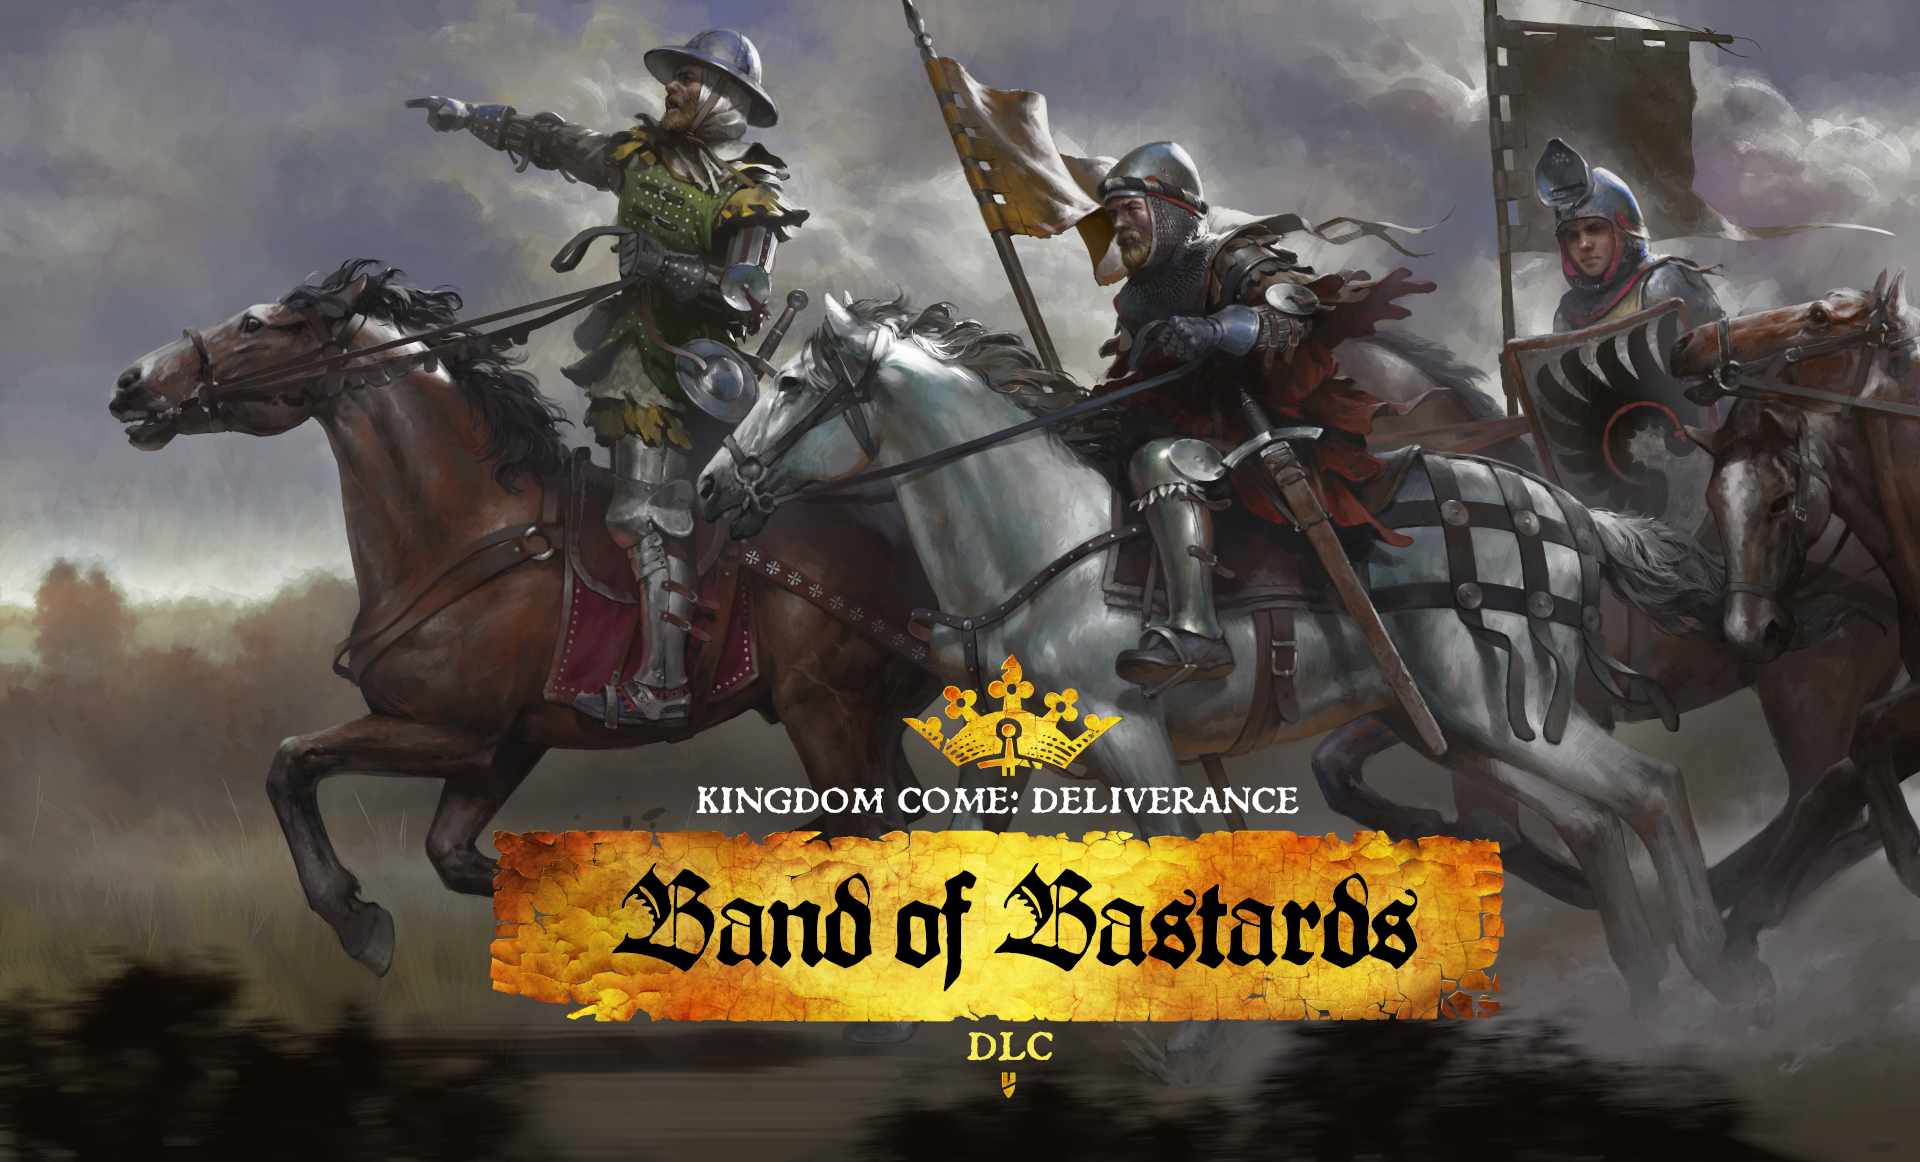 Kingdom Come Deliverance - Band of Bastards